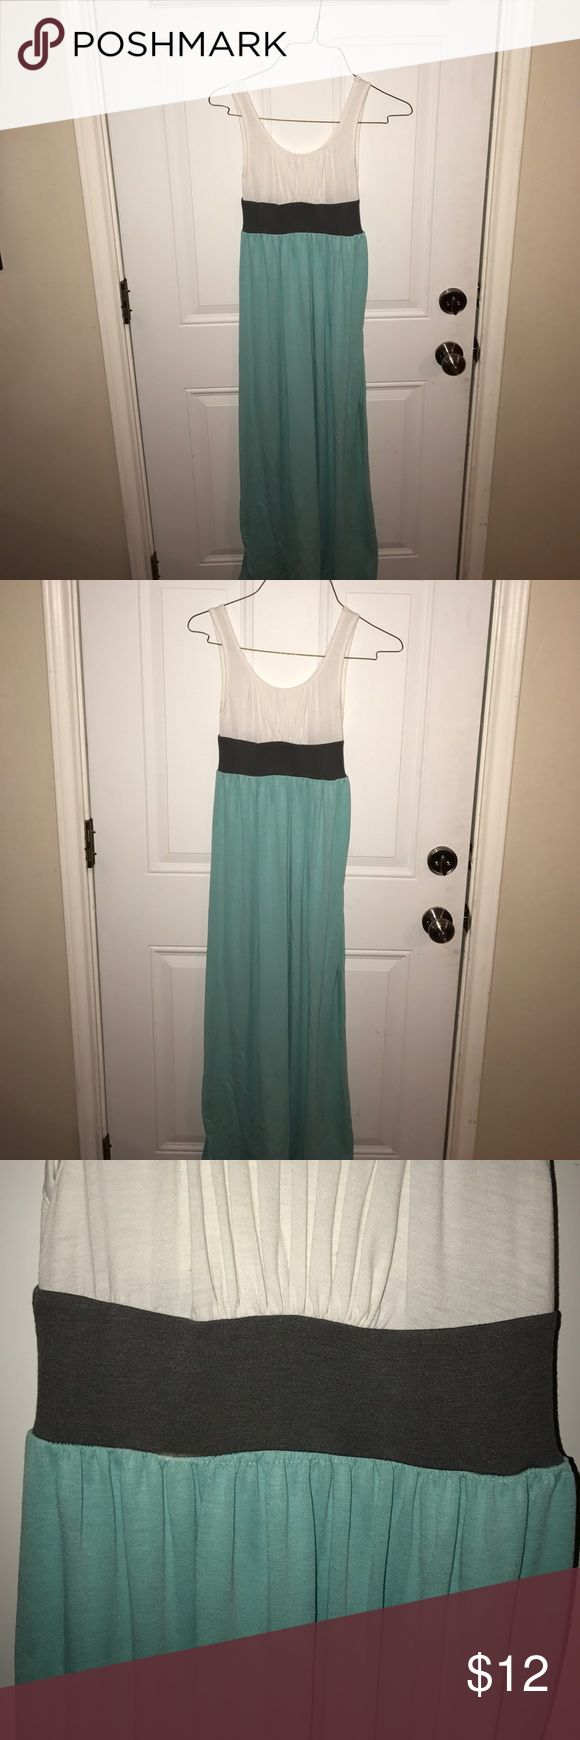 White and turquoise maxi dress White grey and turquoise maxi dress super cute!! Xs but I'm a small/medium and it fits me Mossimo Supply Co Dresses Maxi